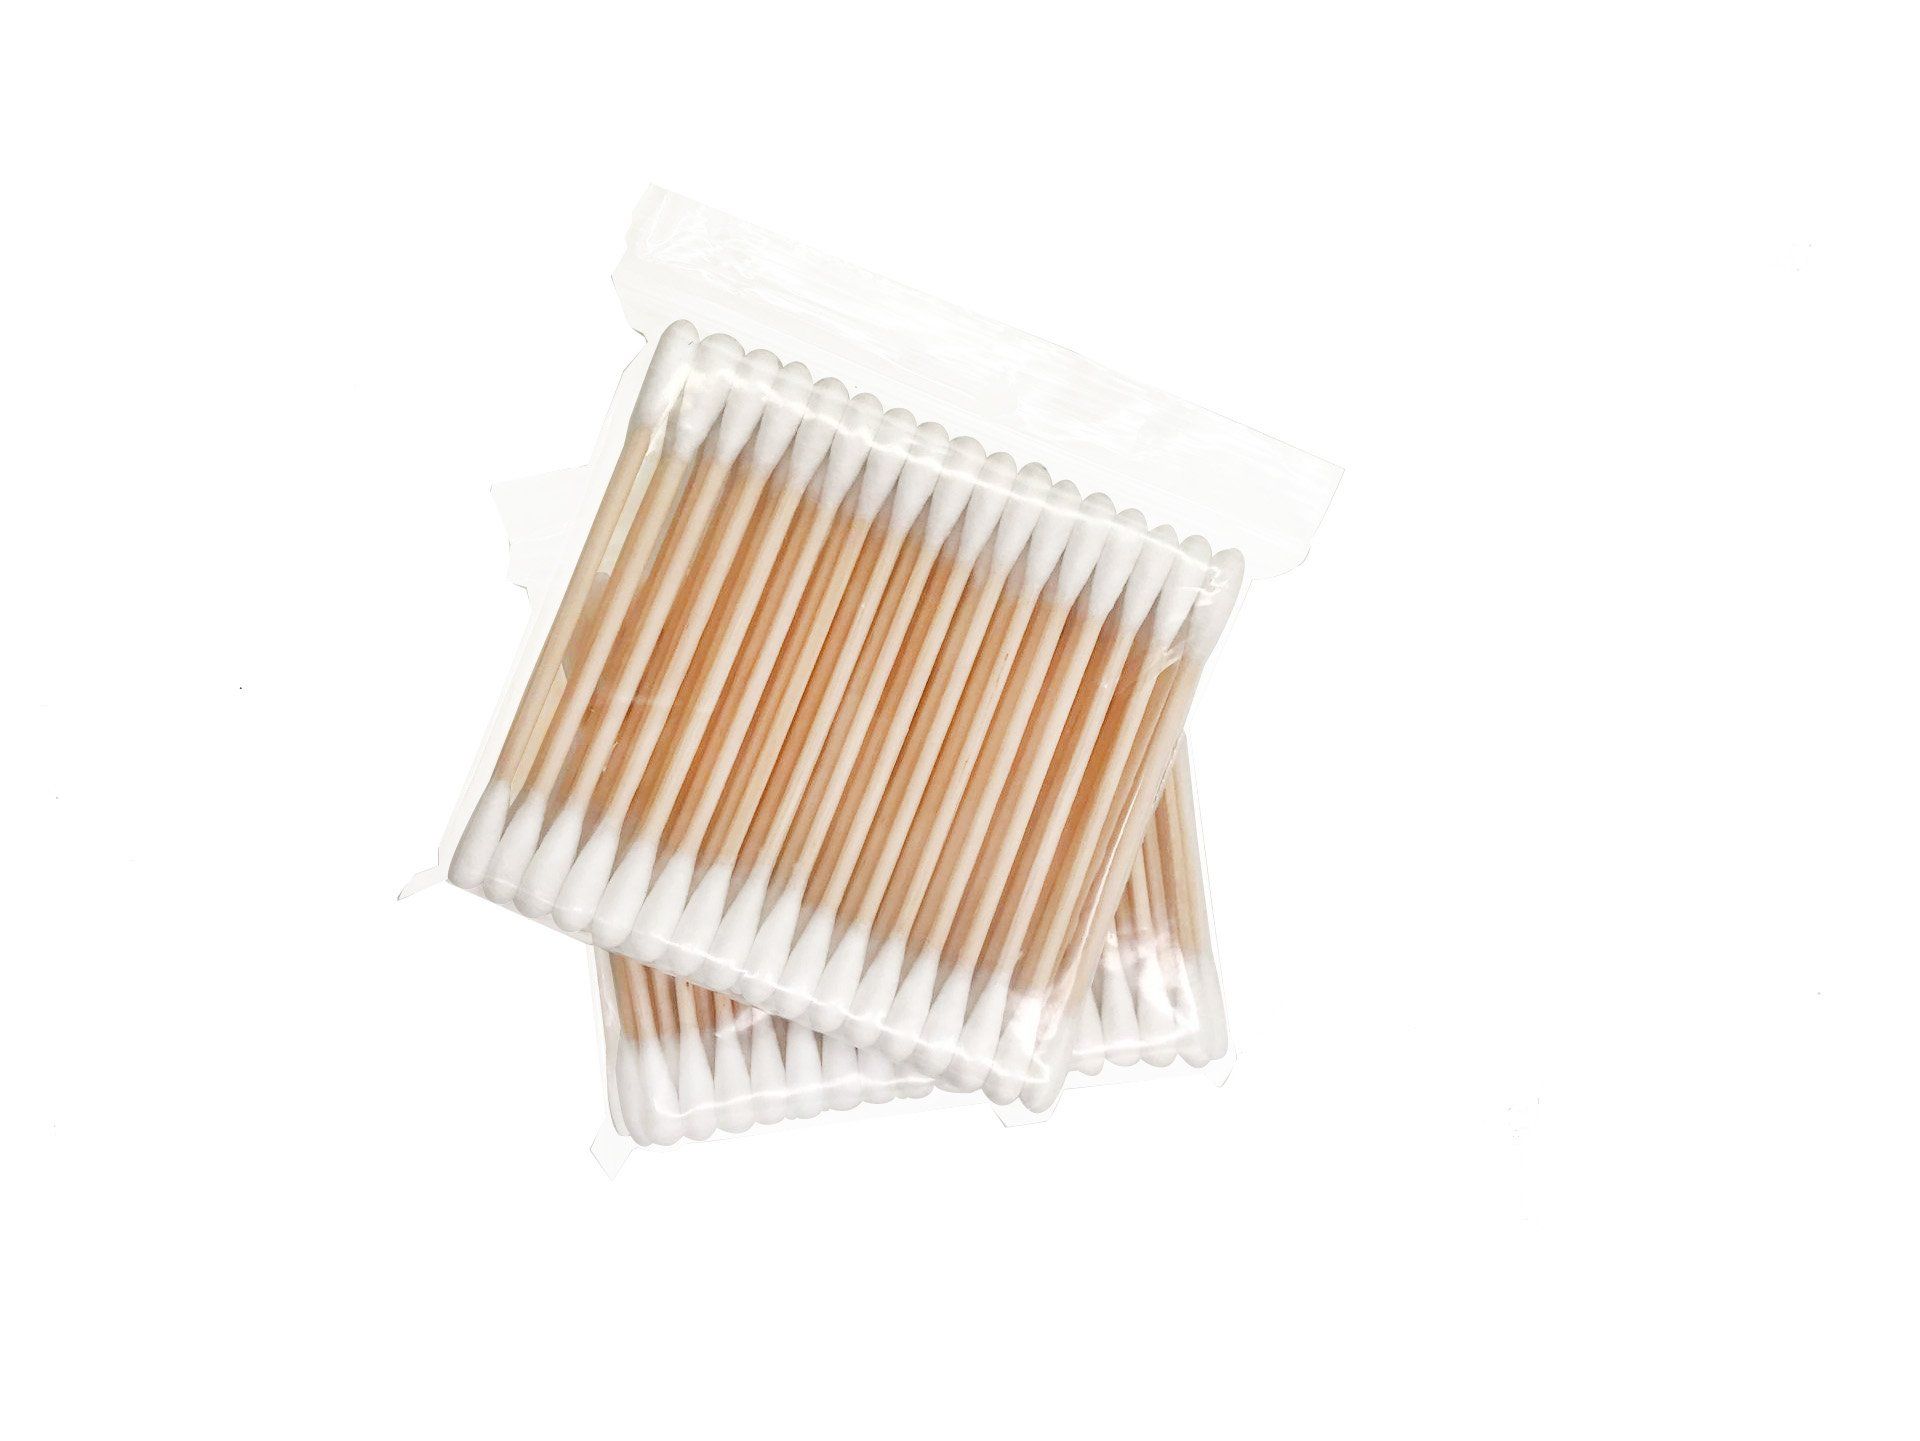 Cotton Swabs with Wooden Handle,800 ct Double Tipped With Finest Quality Cotton Heads- Multipurpose, Safe, Highly Absorbent & Hygienic